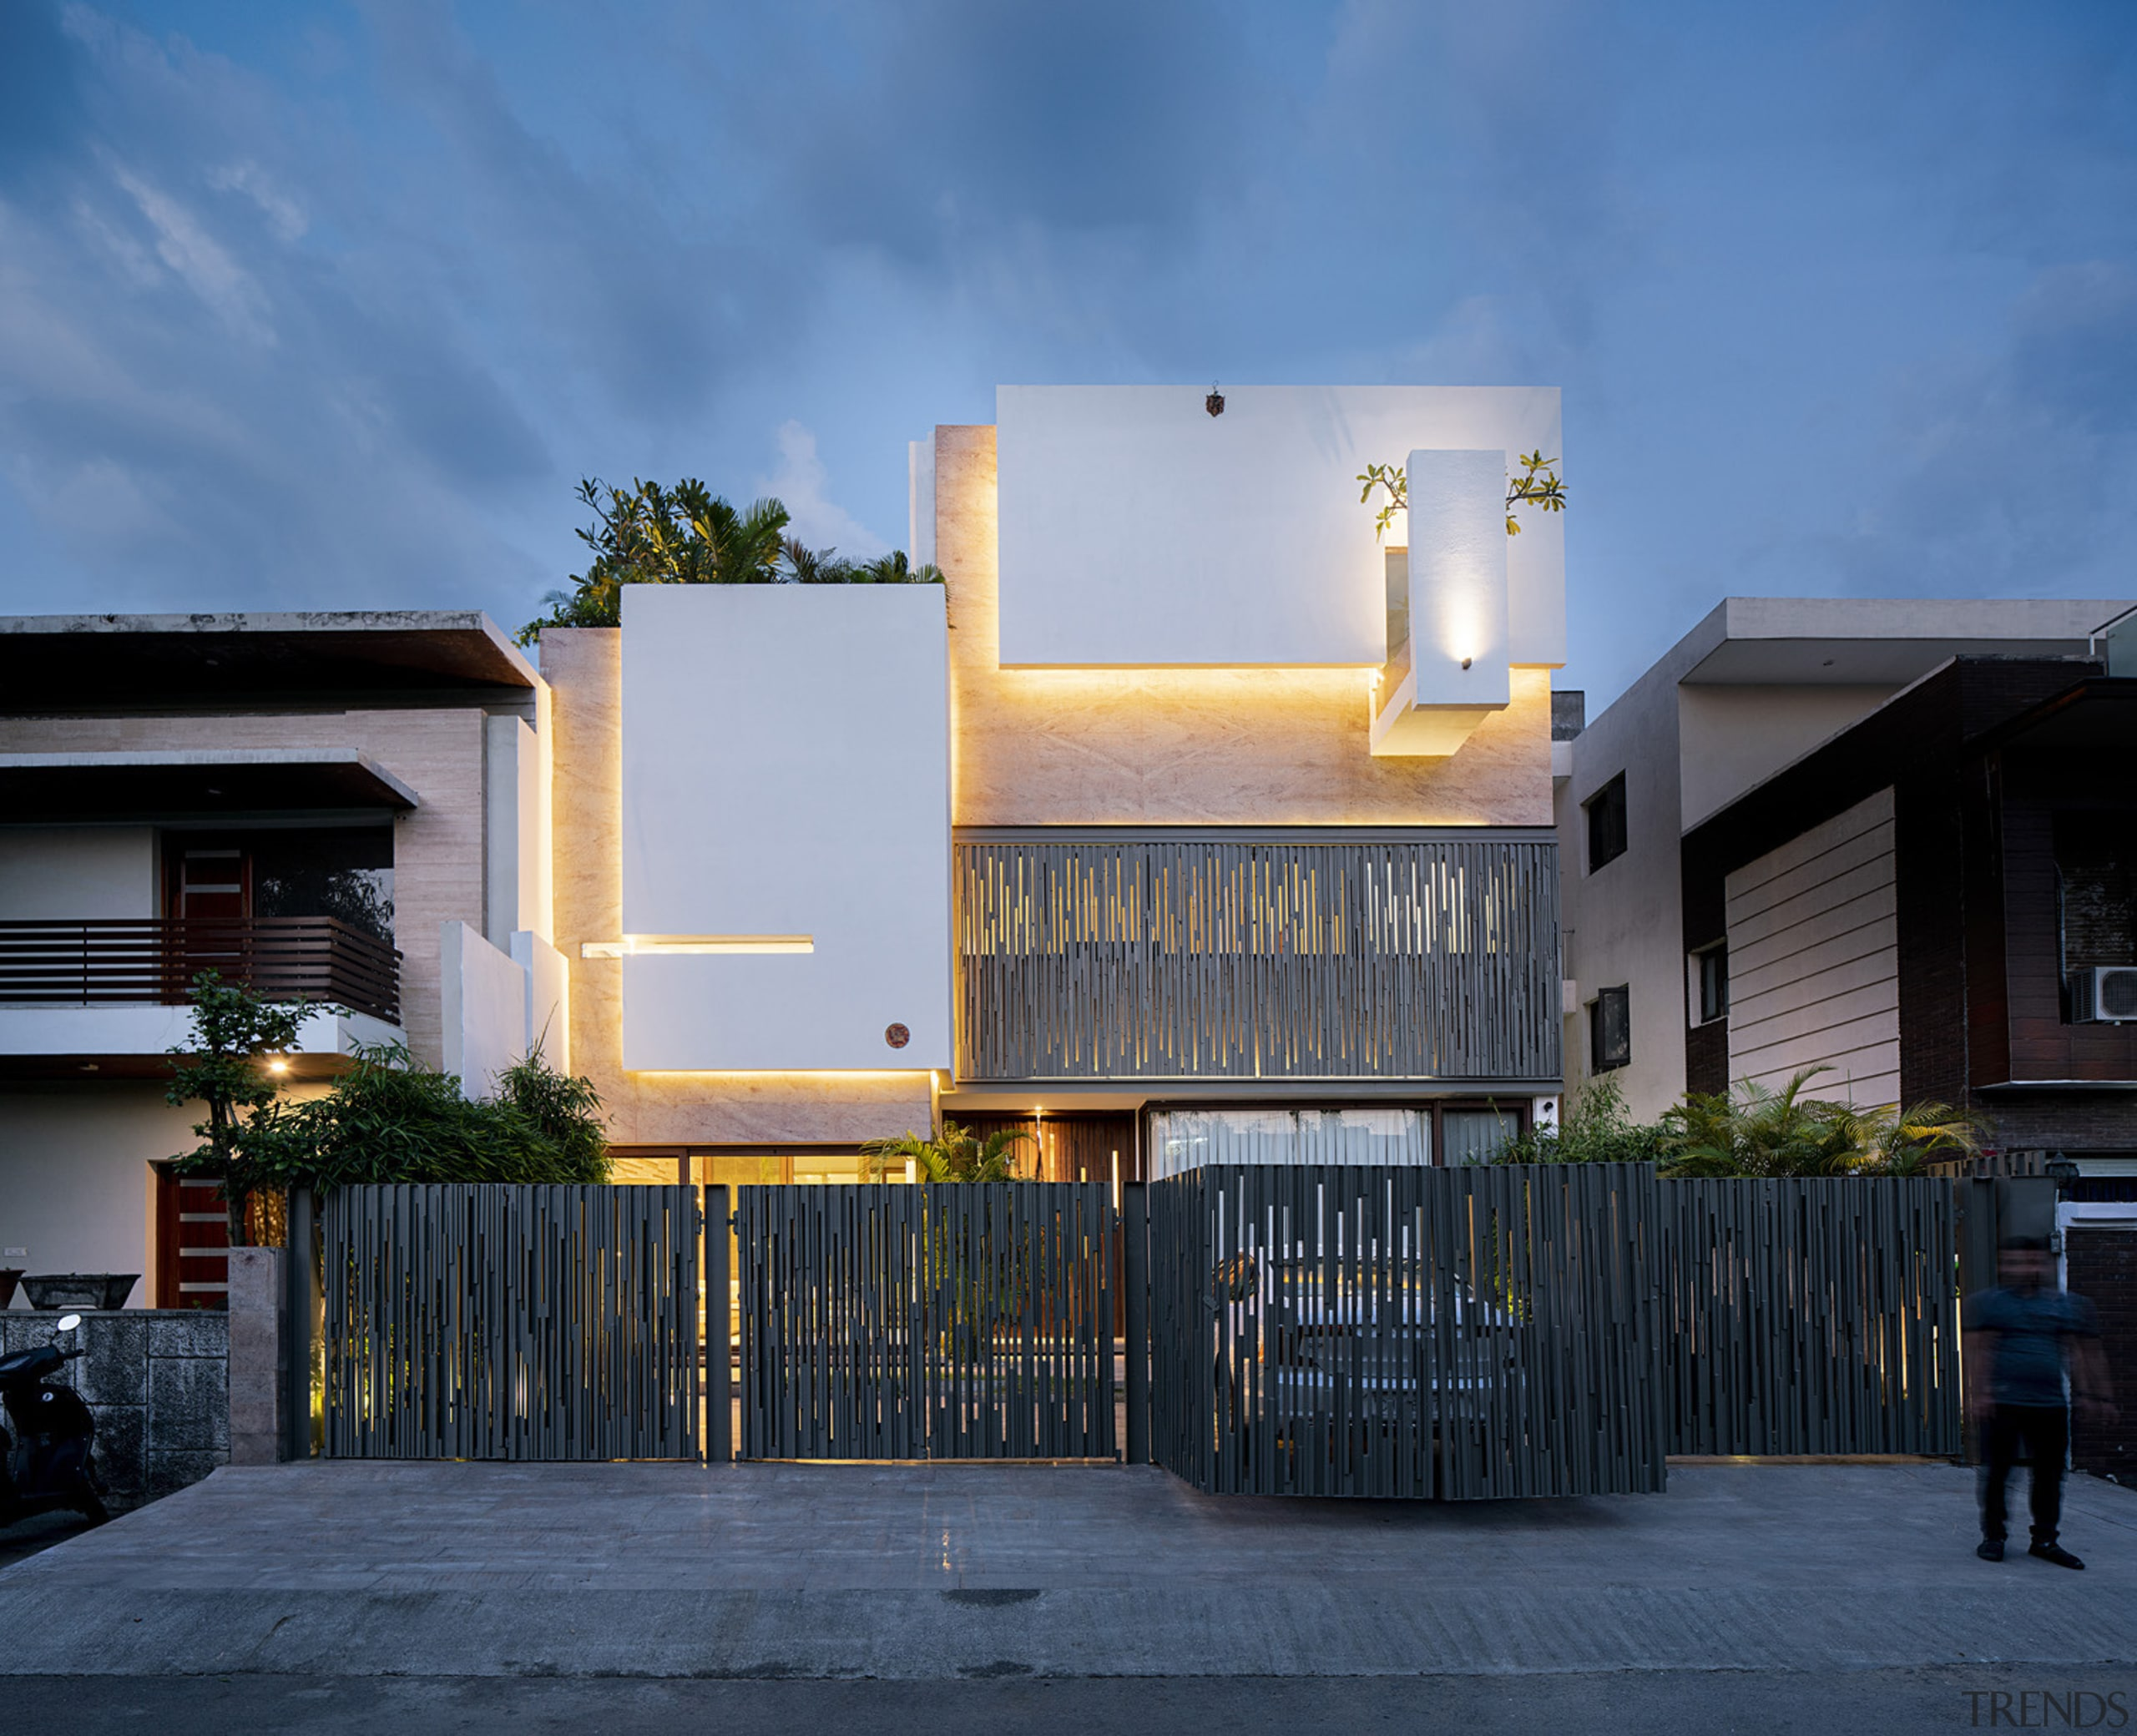 At night, thanks to strategic lighting, the architectural